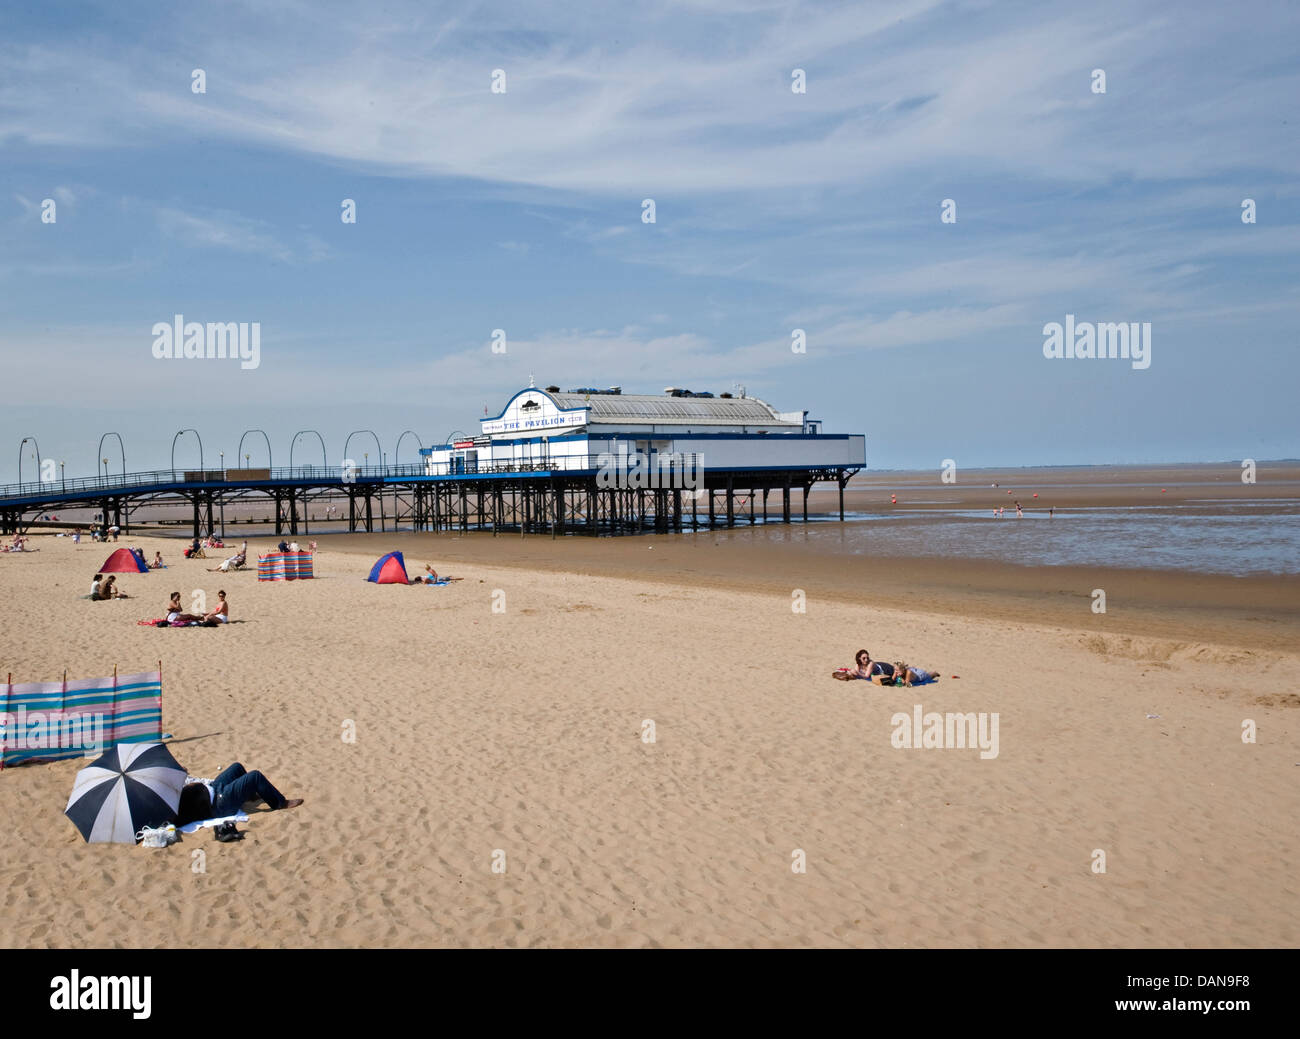 Cleethorpes Pier in the summer - Stock Image